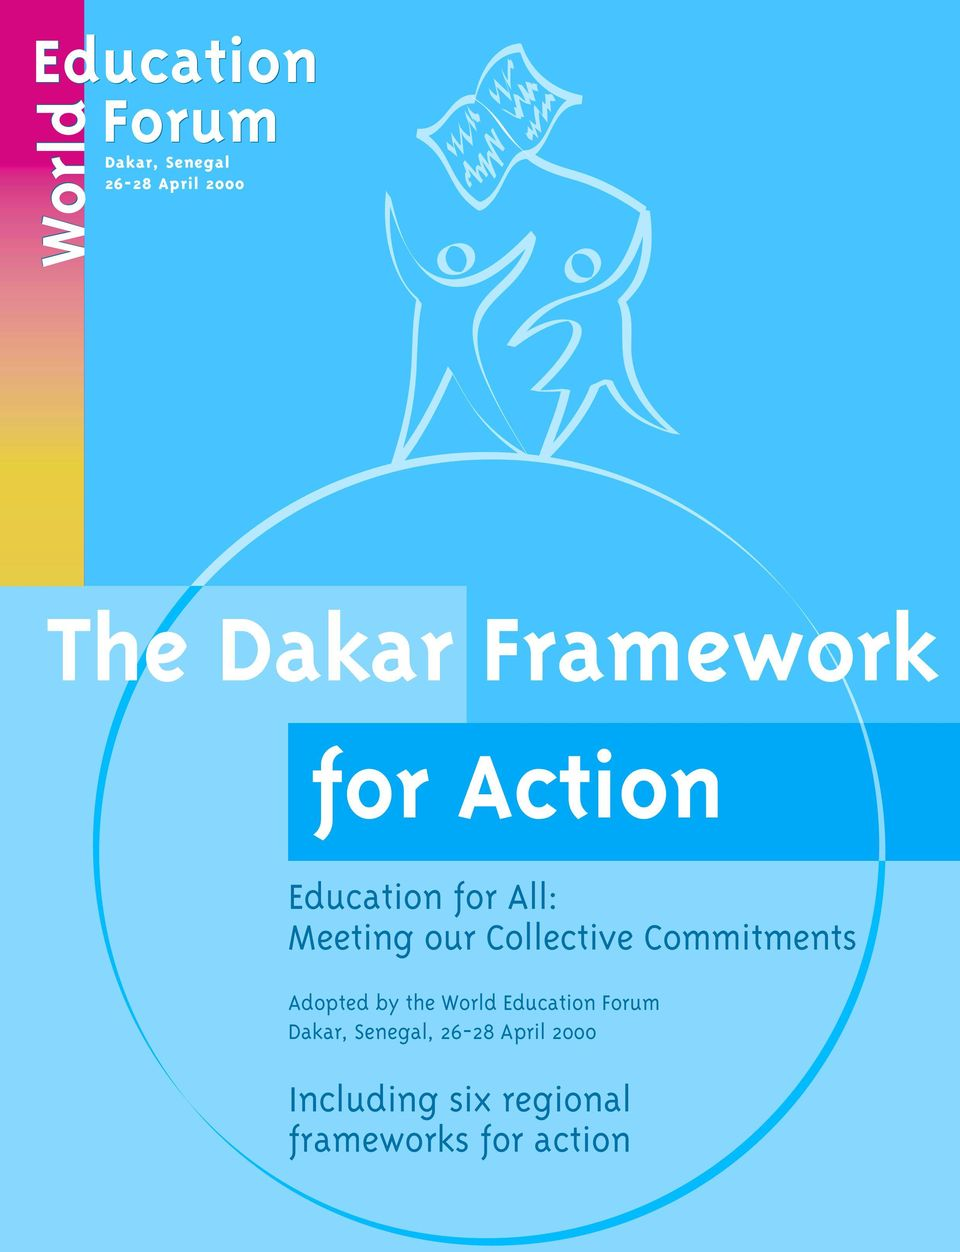 Commitments Adopted by the World Education Forum Dakar,